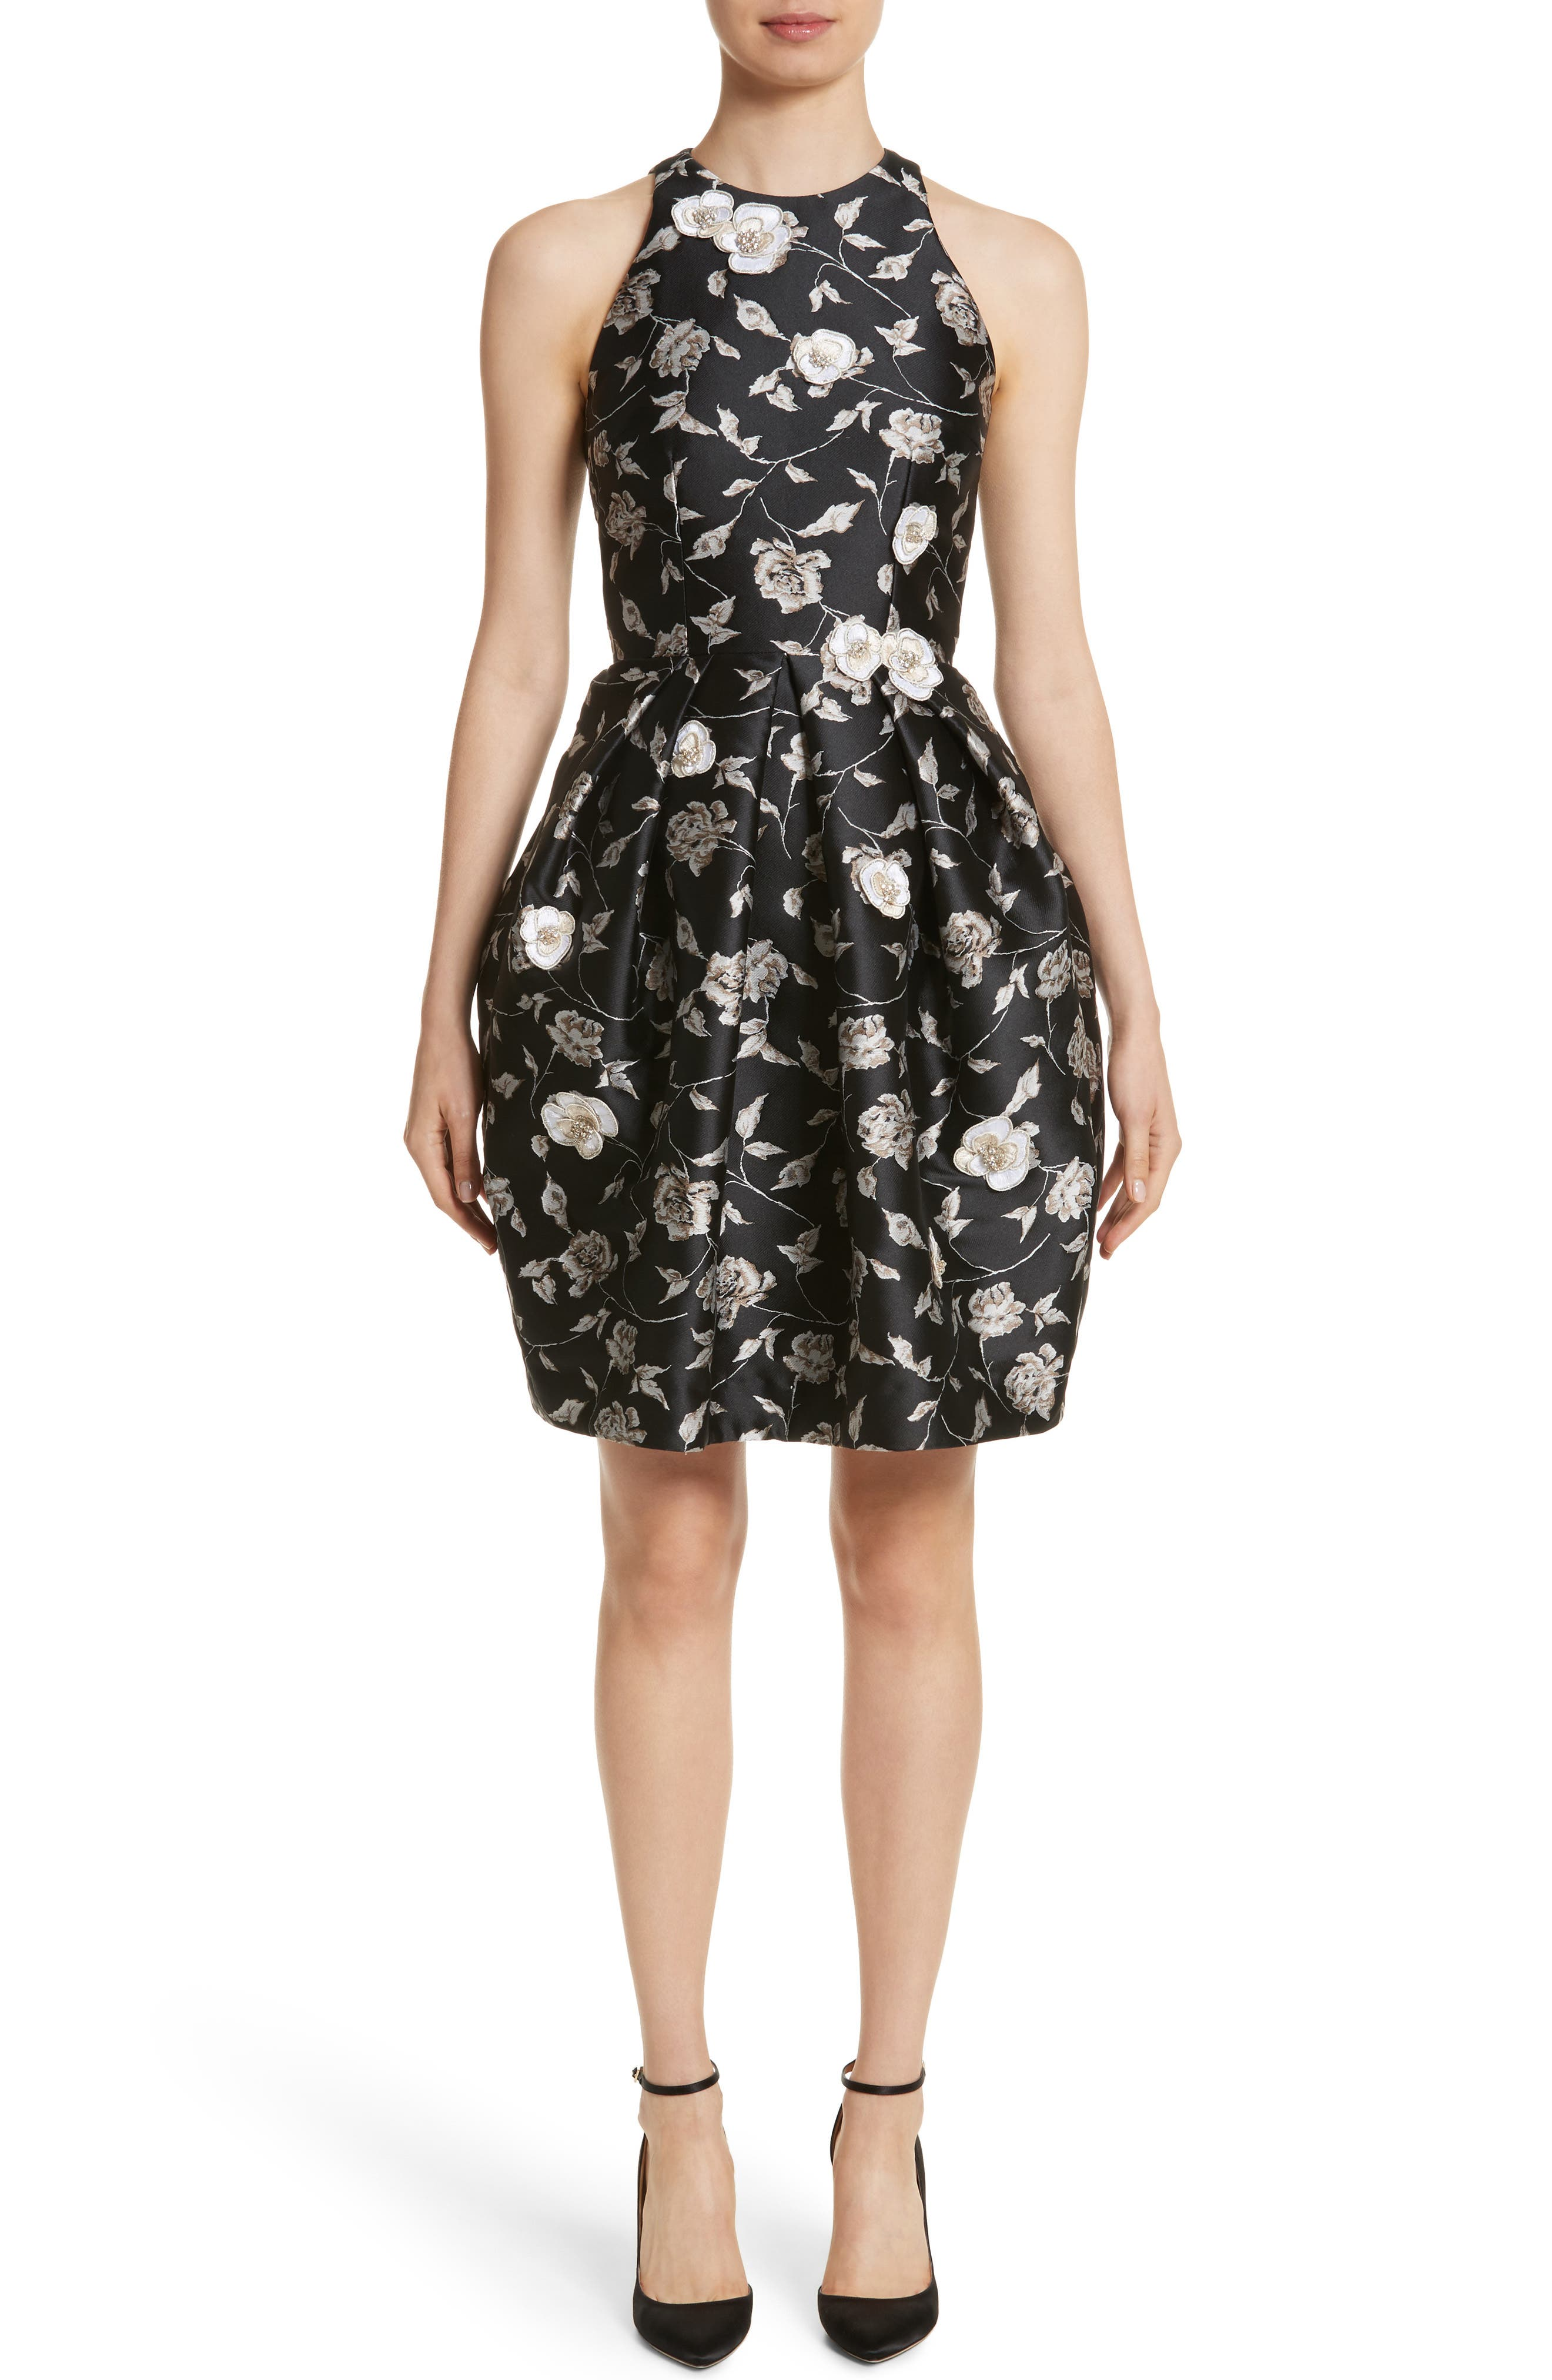 Carmen Marc Valvo Embellished Appliqué Floral Jacquard Cocktail Dress,                             Main thumbnail 1, color,                             Black